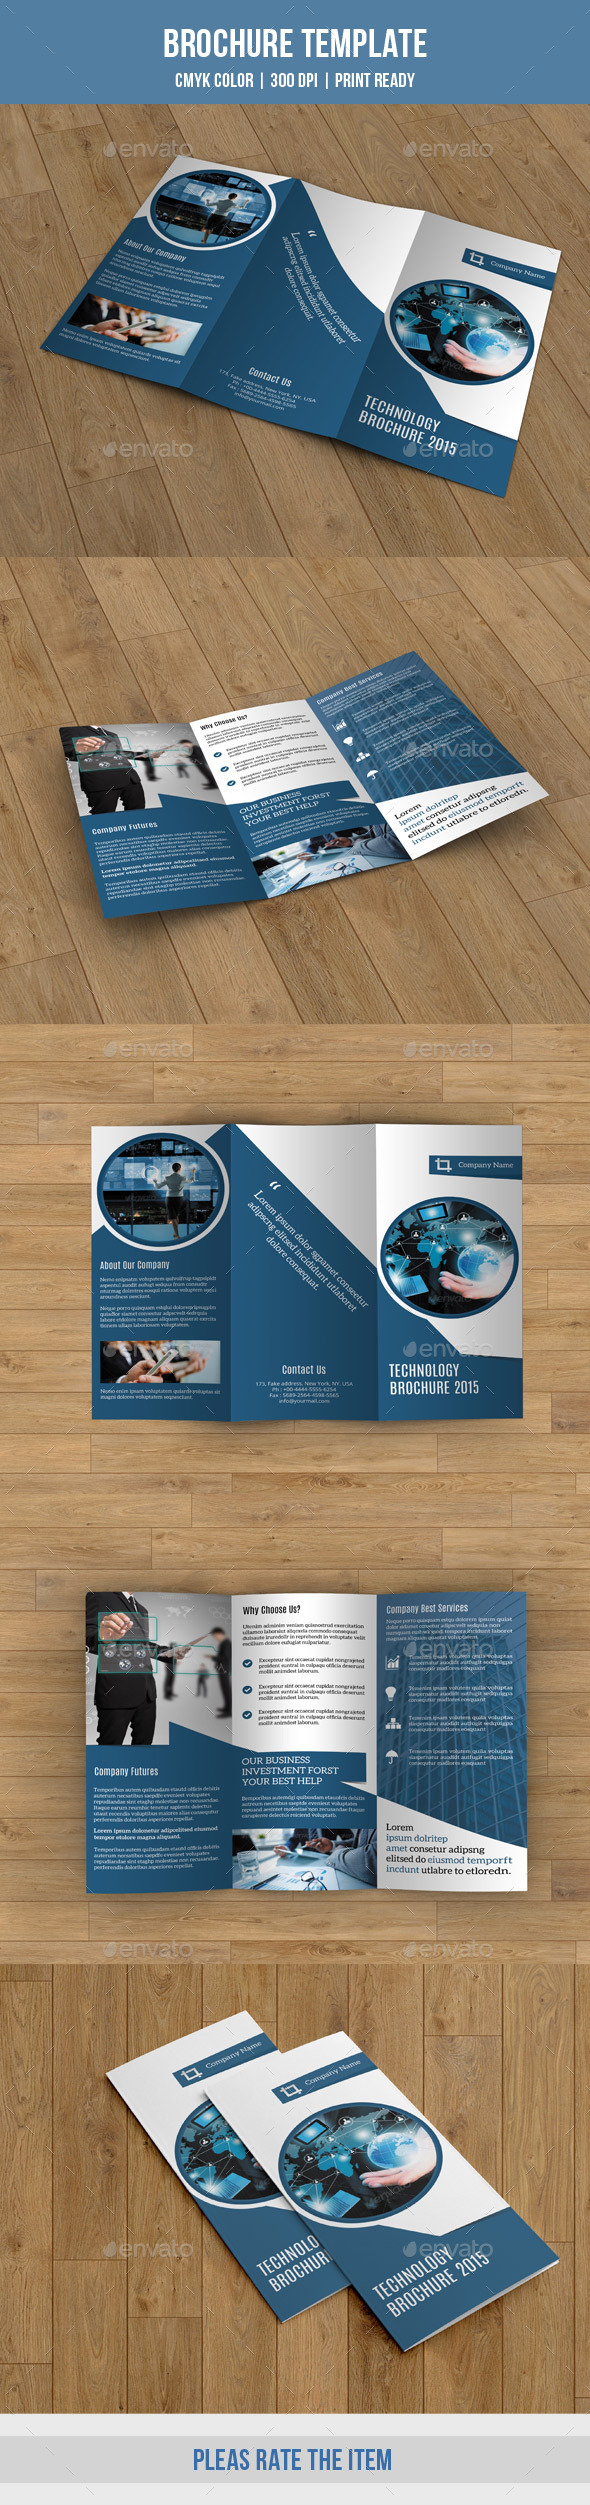 Corporate Trifold Brochure-V200 - Corporate Brochures